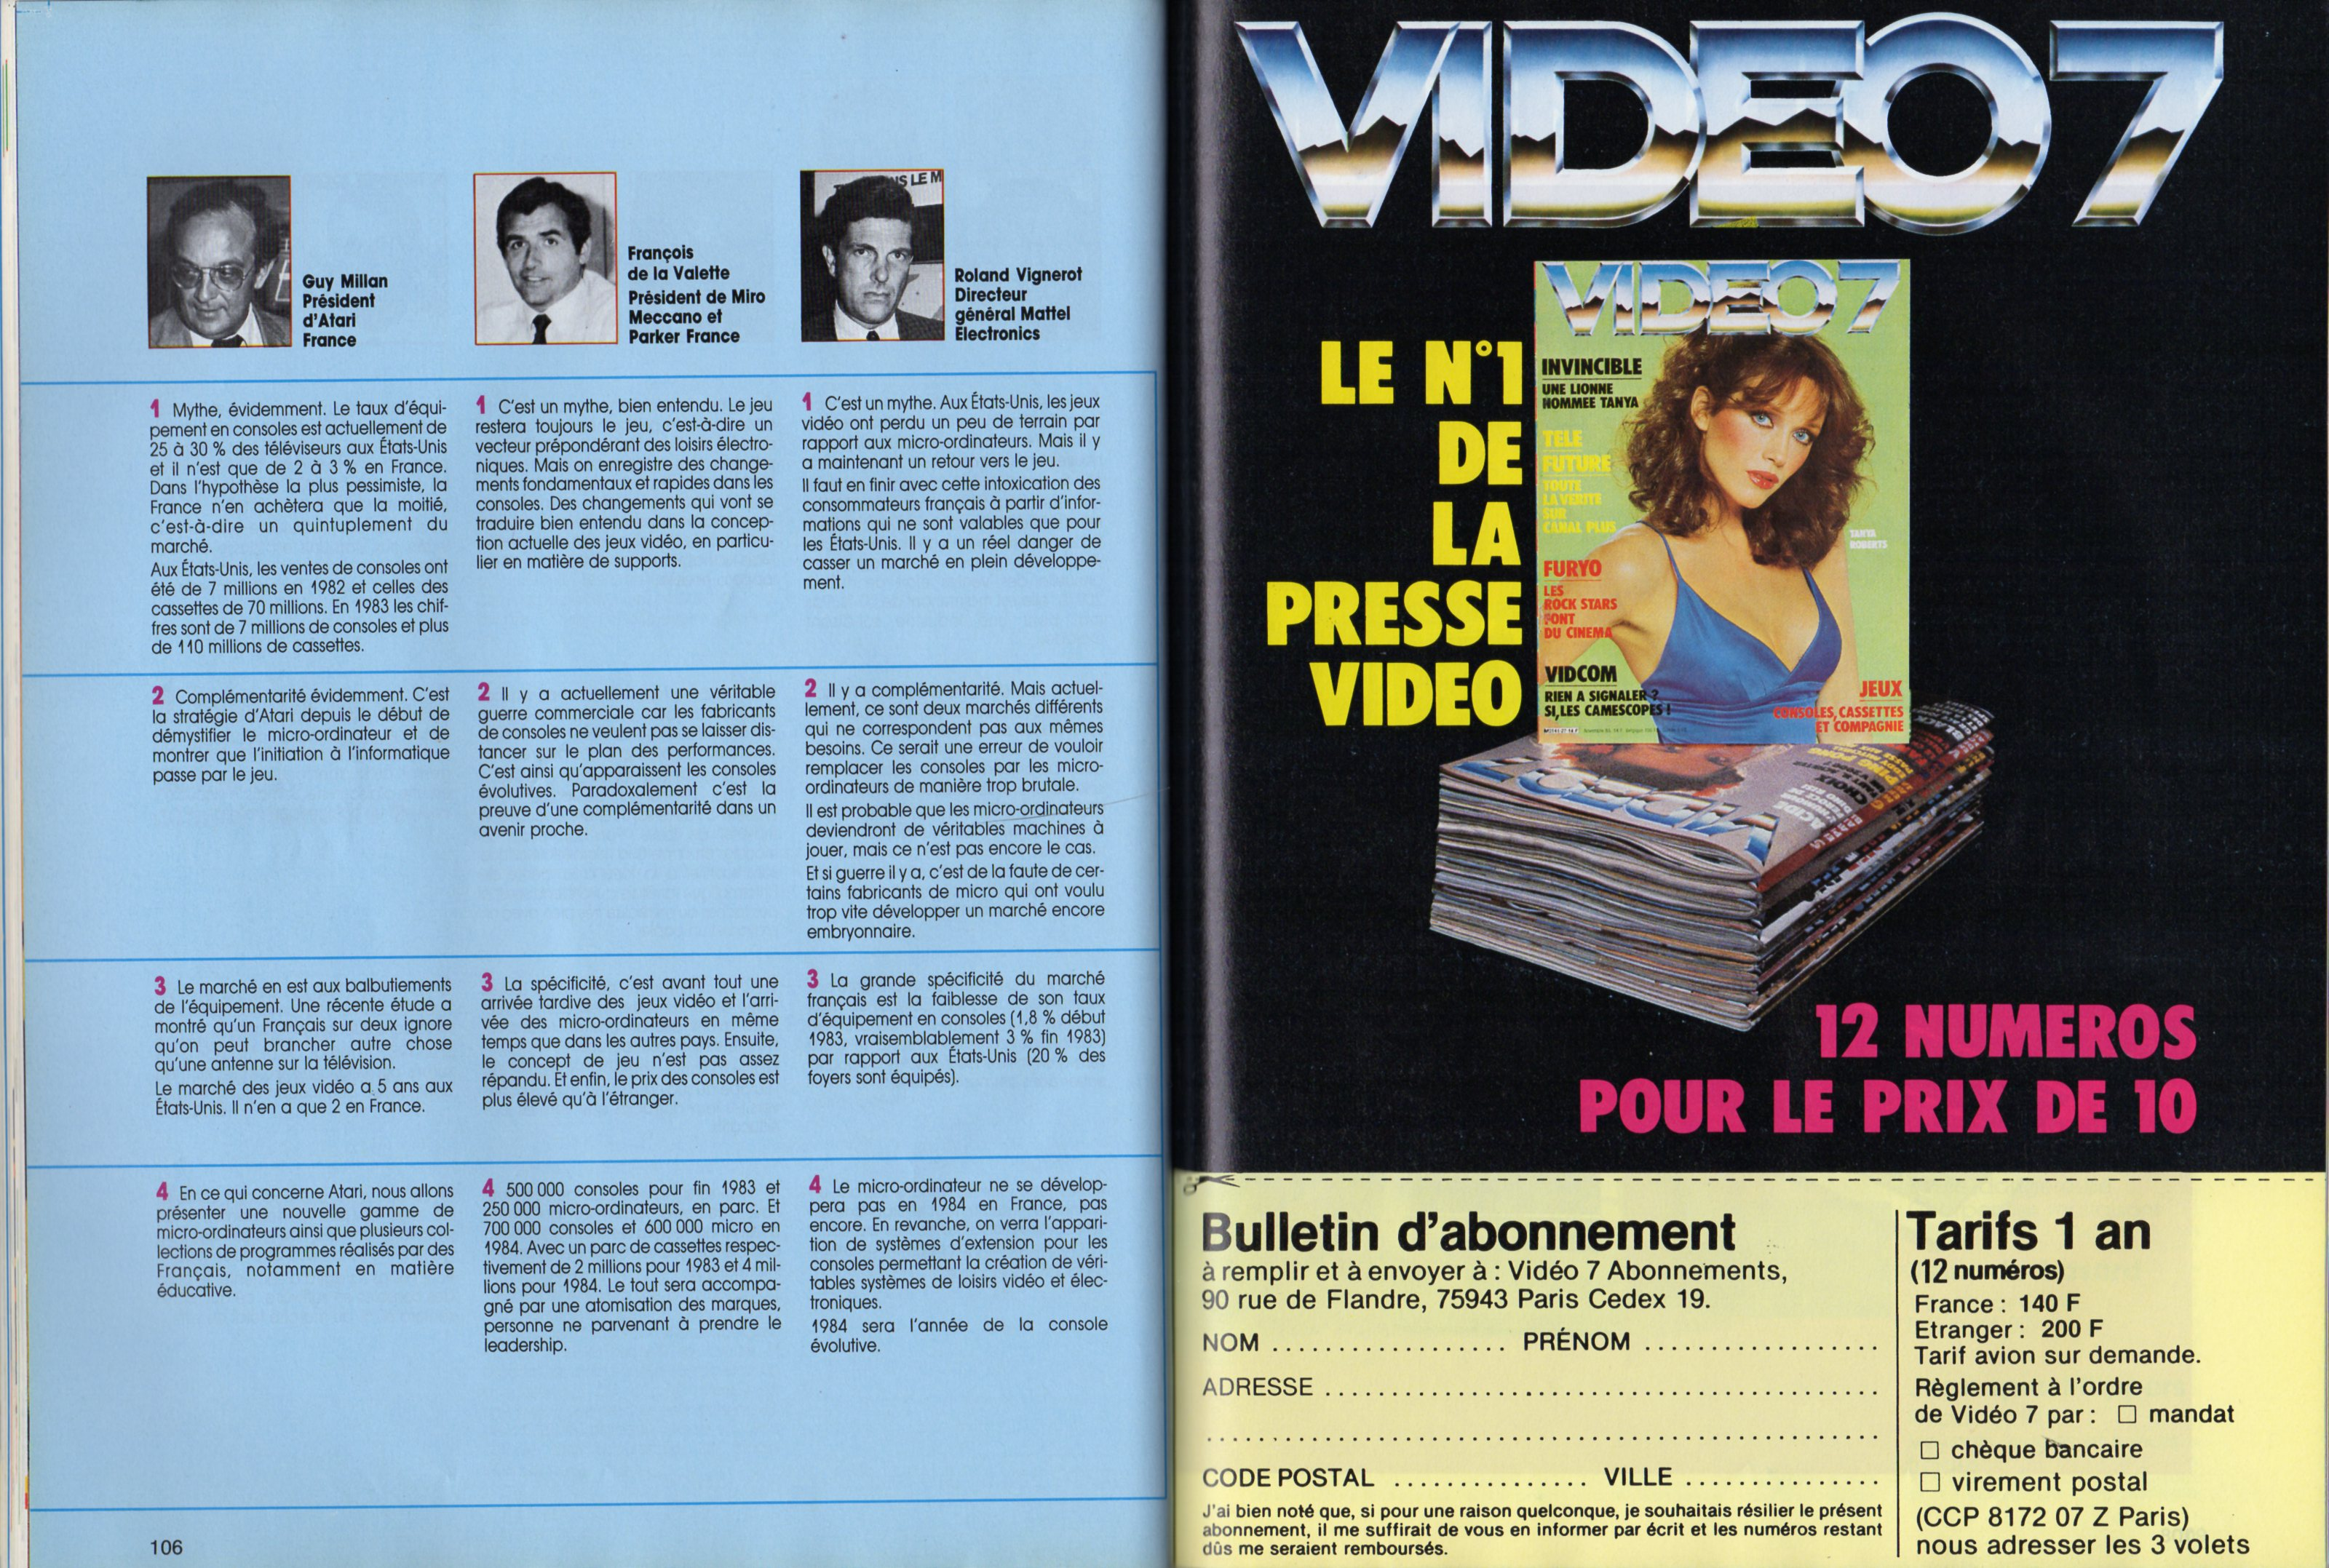 ATARI 2600 [TOPIC GENERALISTE] - Page 4 MICRO7%20-%20VIDEO7%20HS%20%28NOEL%201983%29%20-%20Page_106-107